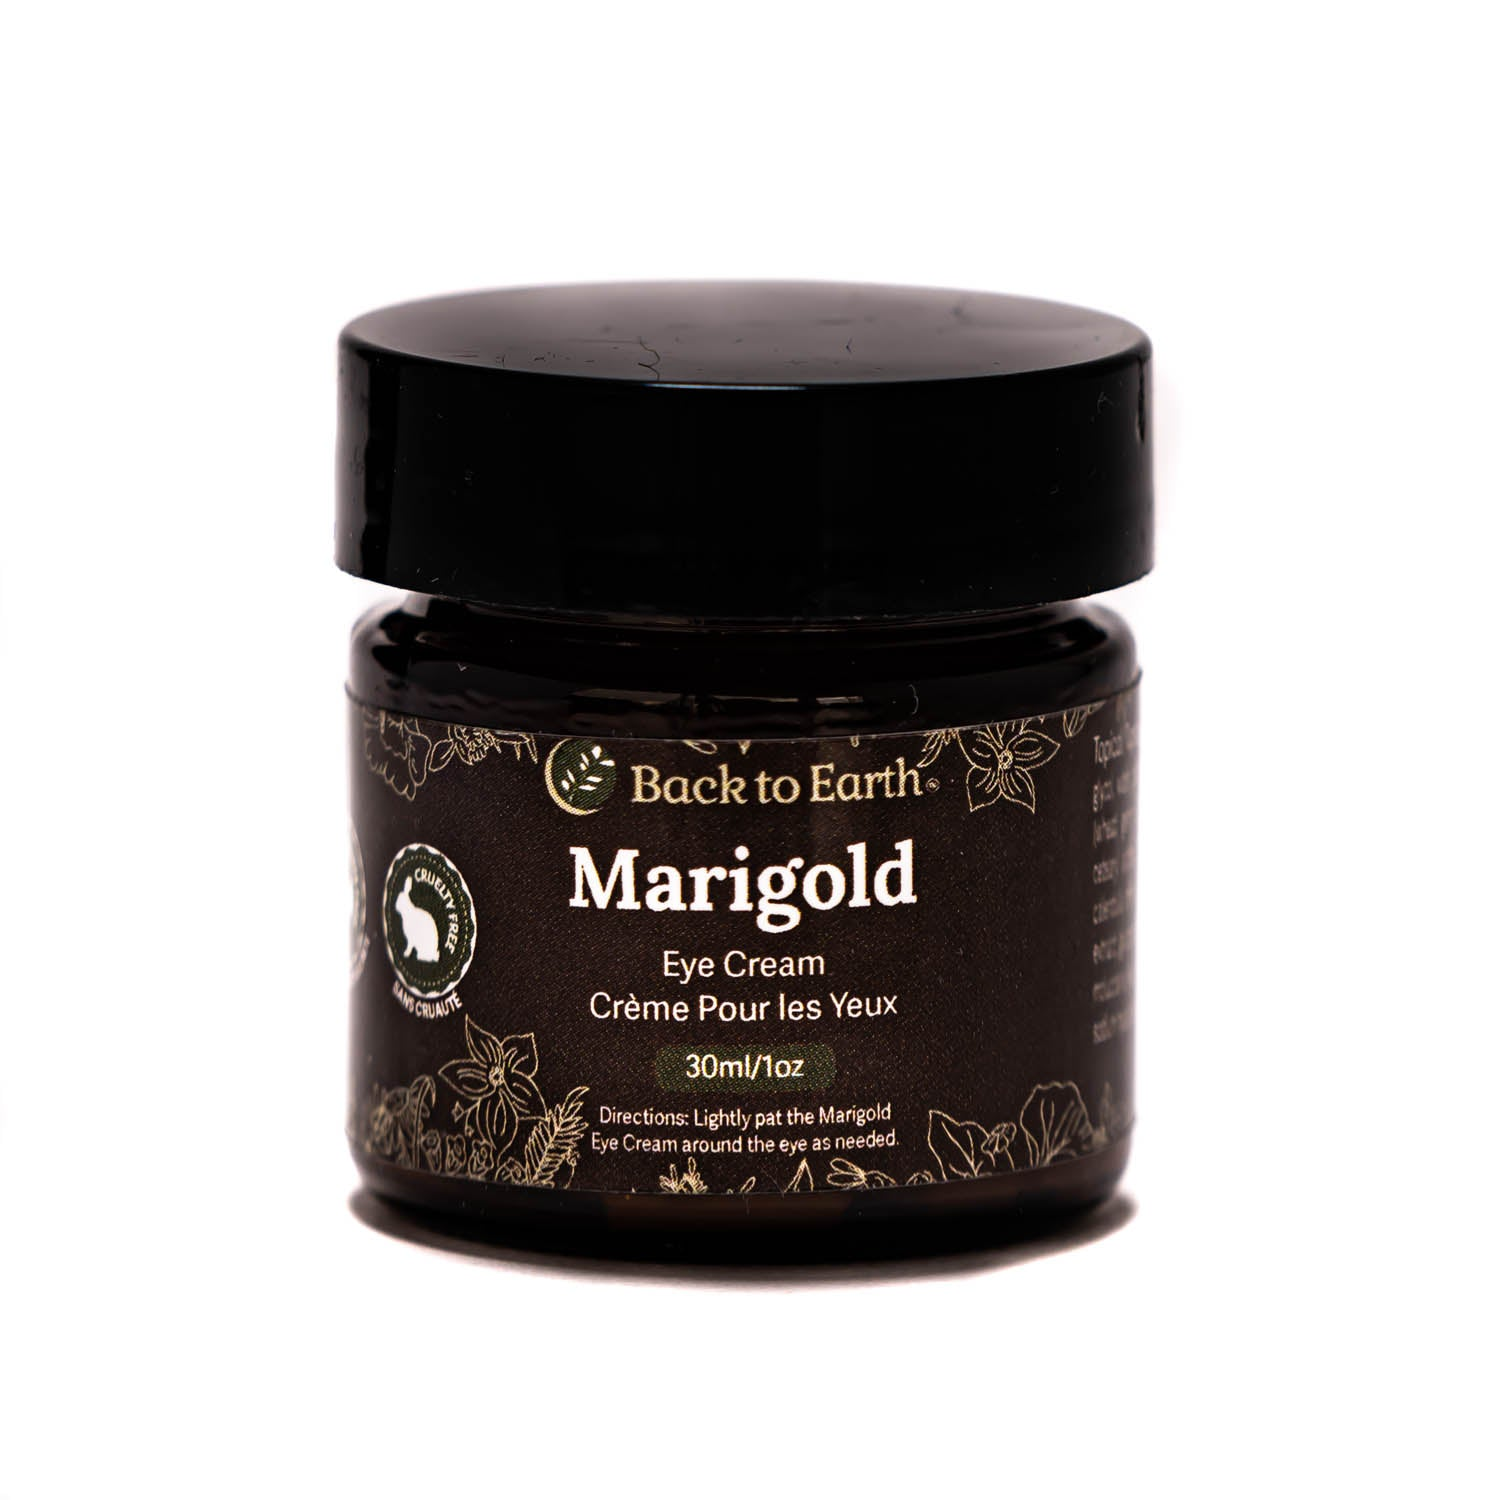 Marigold Eye Cream - 30ml/1oz